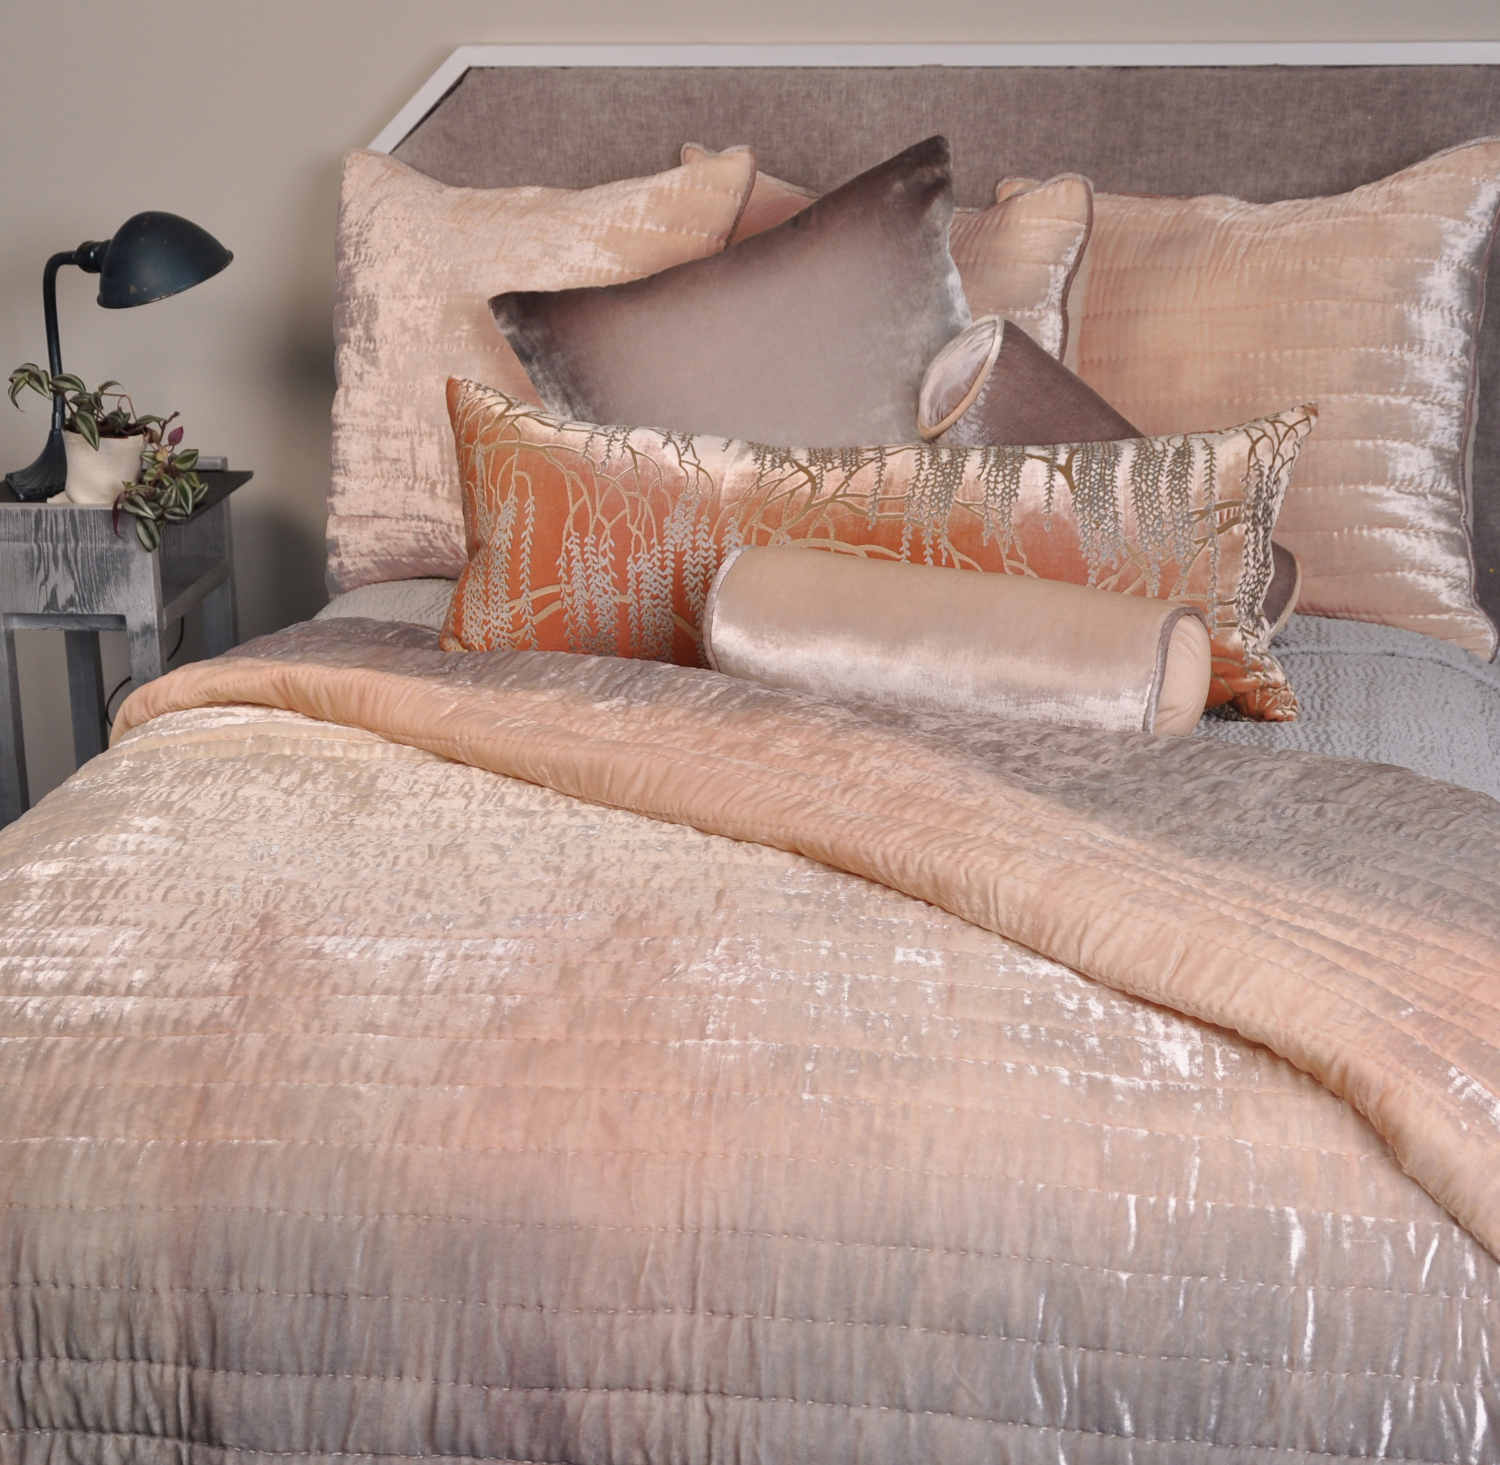 UUU Kevin OBrien Studio Bedding  Ophelia Opal Quilted